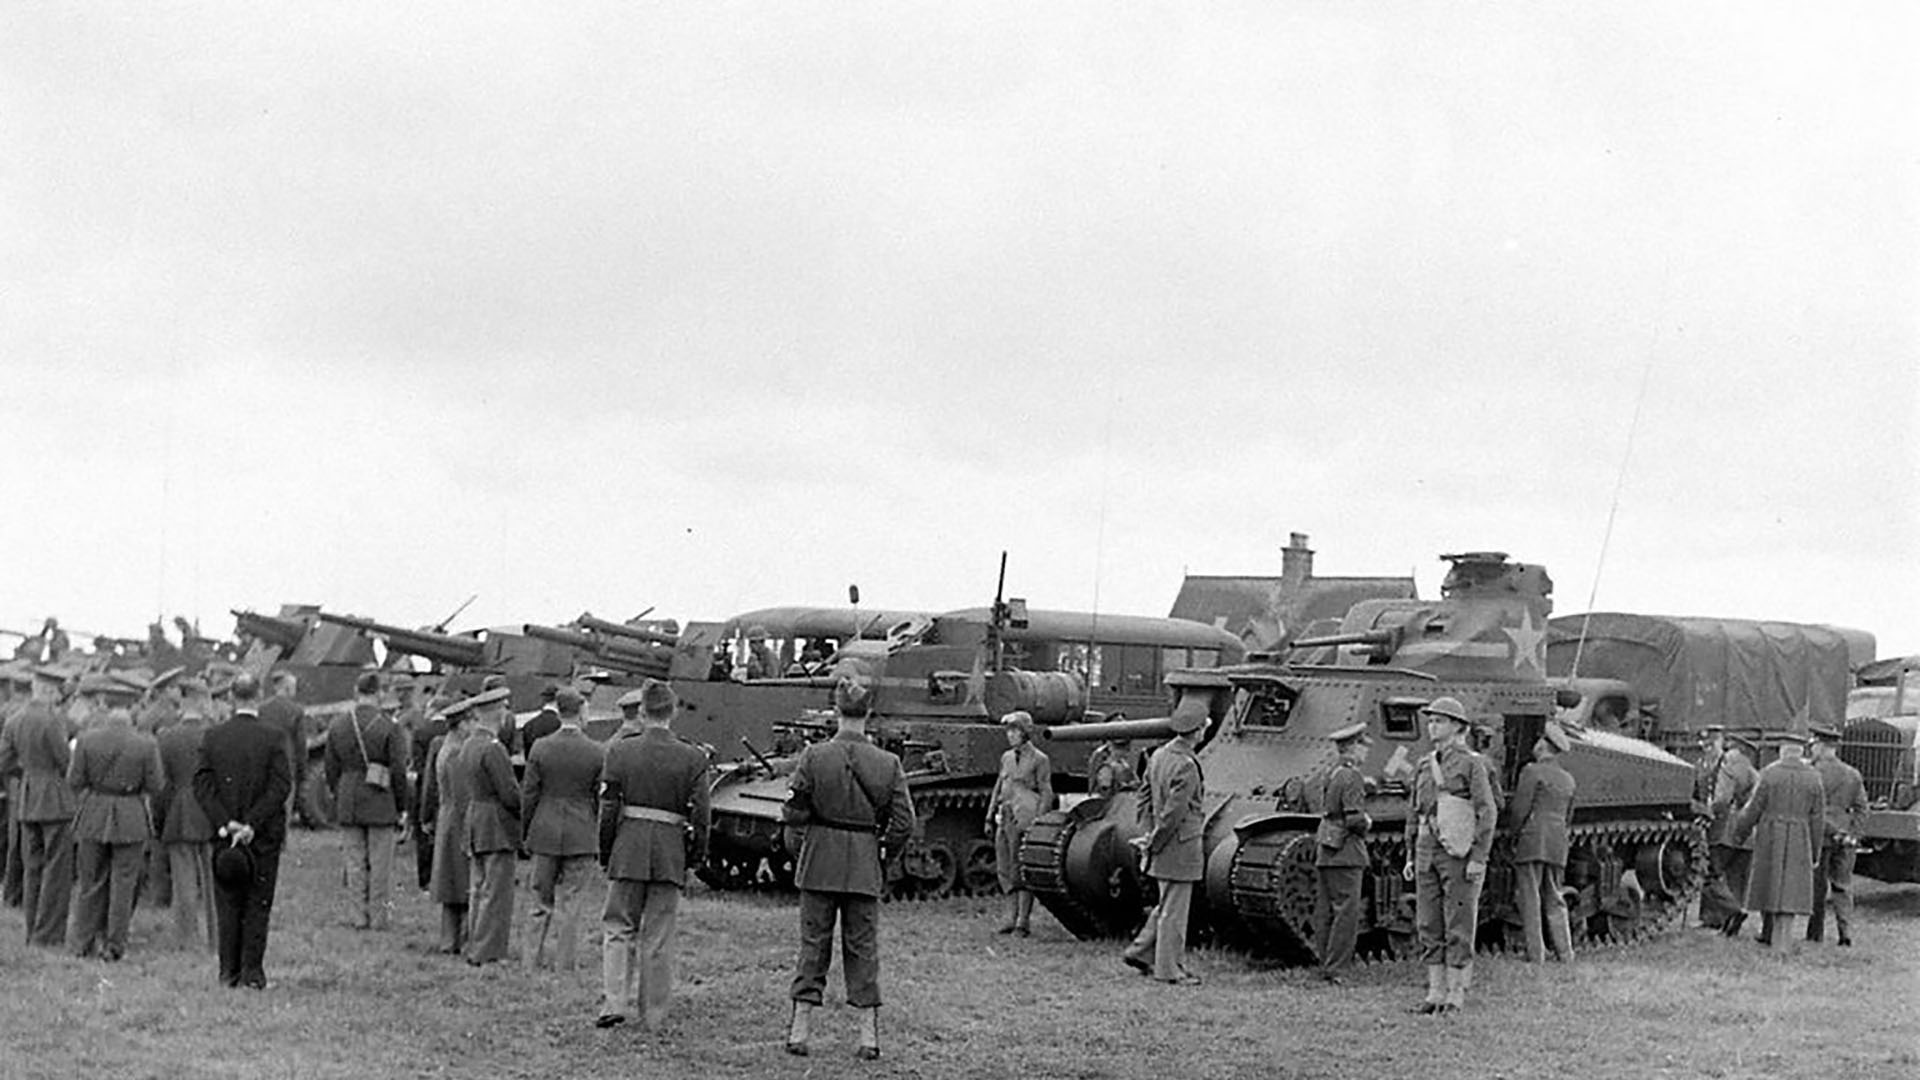 Vehicles of 1st Armored Division